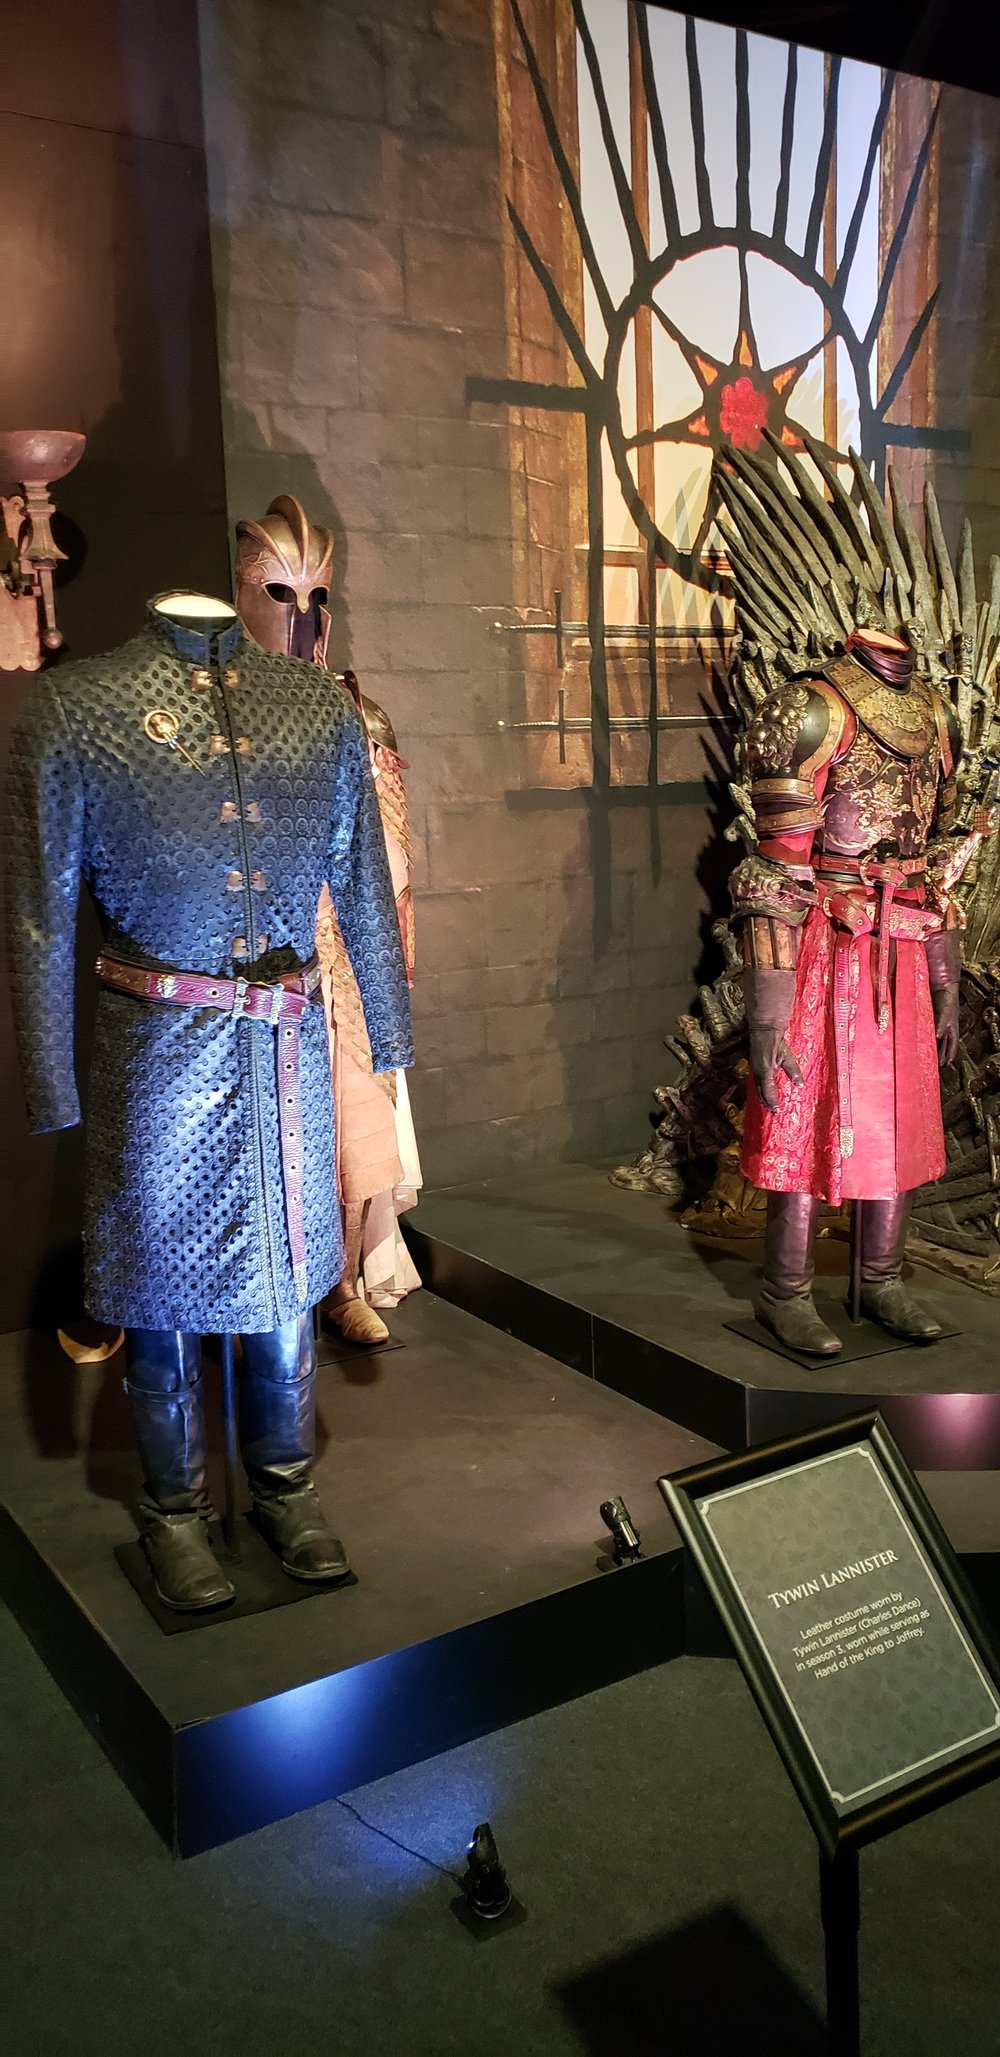 Twyin Lannister's costume and others in Throne Room